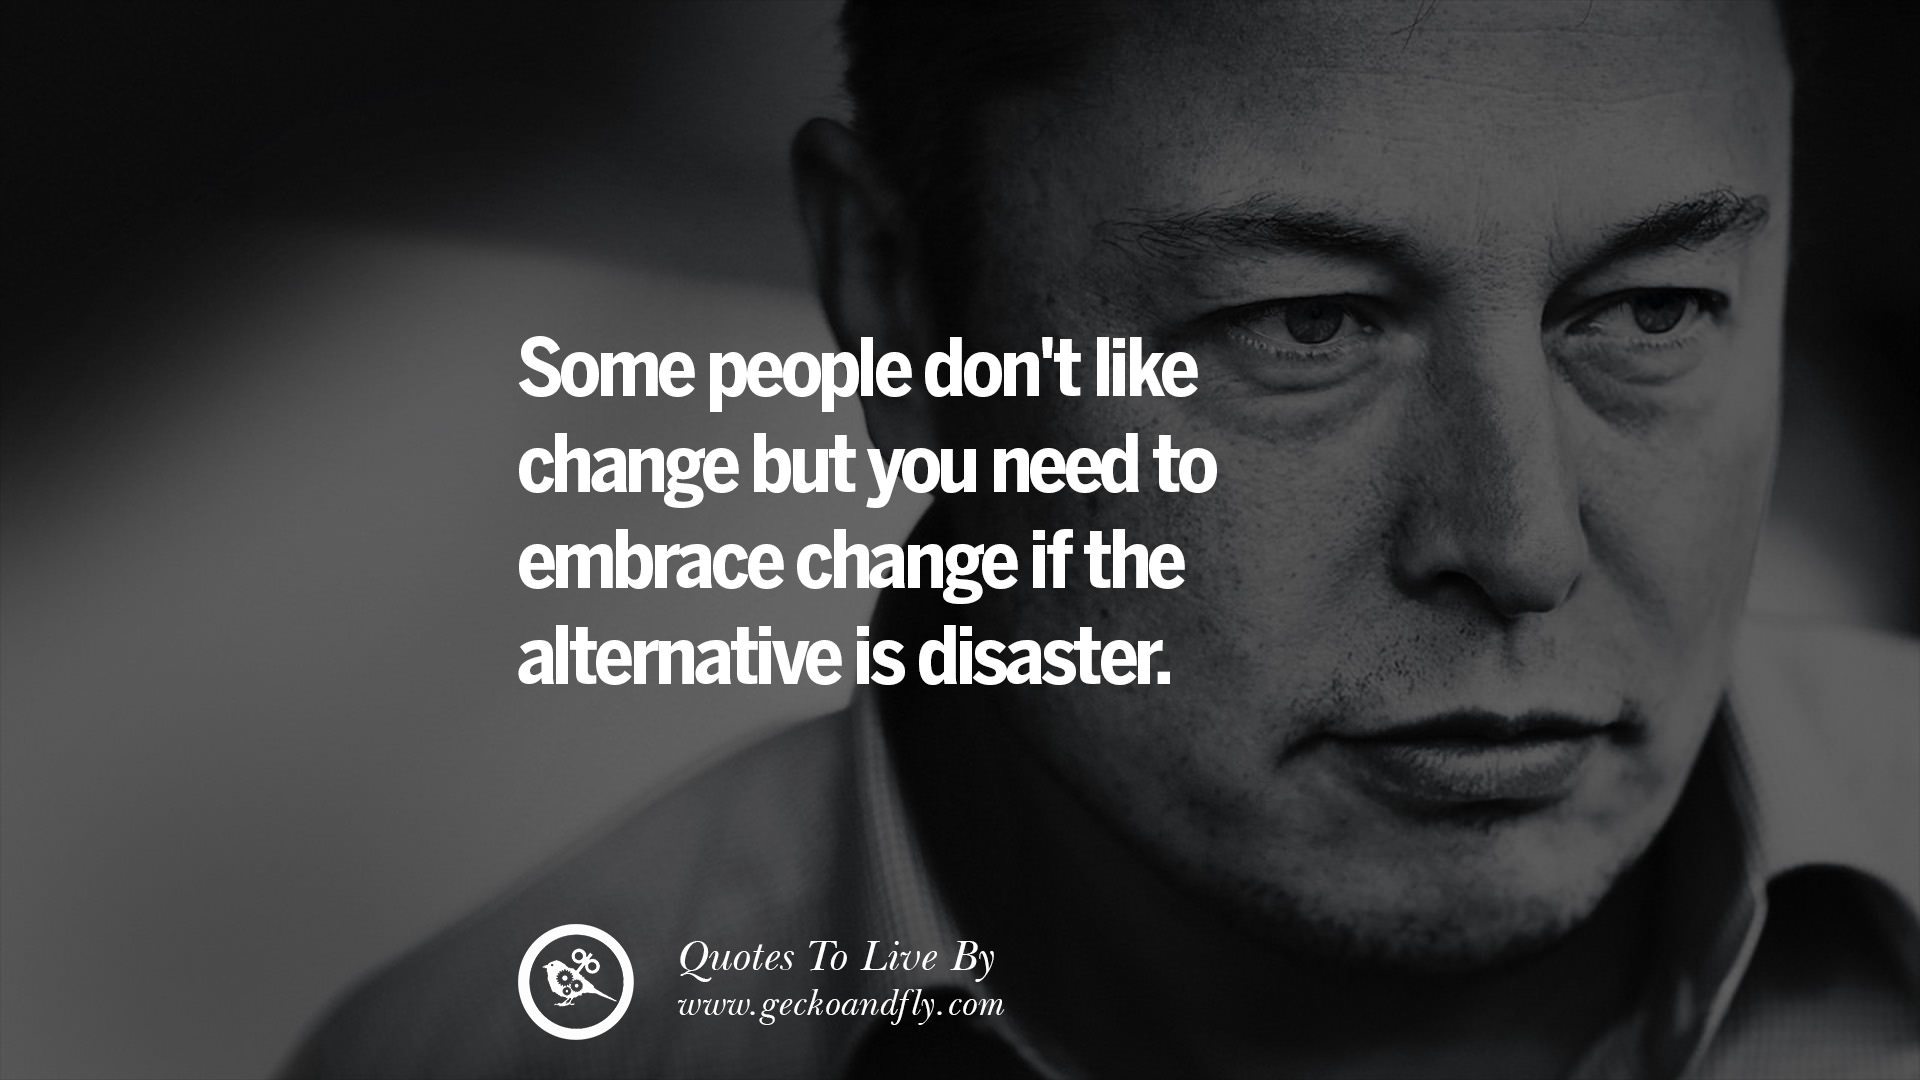 Famous People Love Quotes 20 Elon Musk Quotes On Business Risk And The Future  Geckoandfly